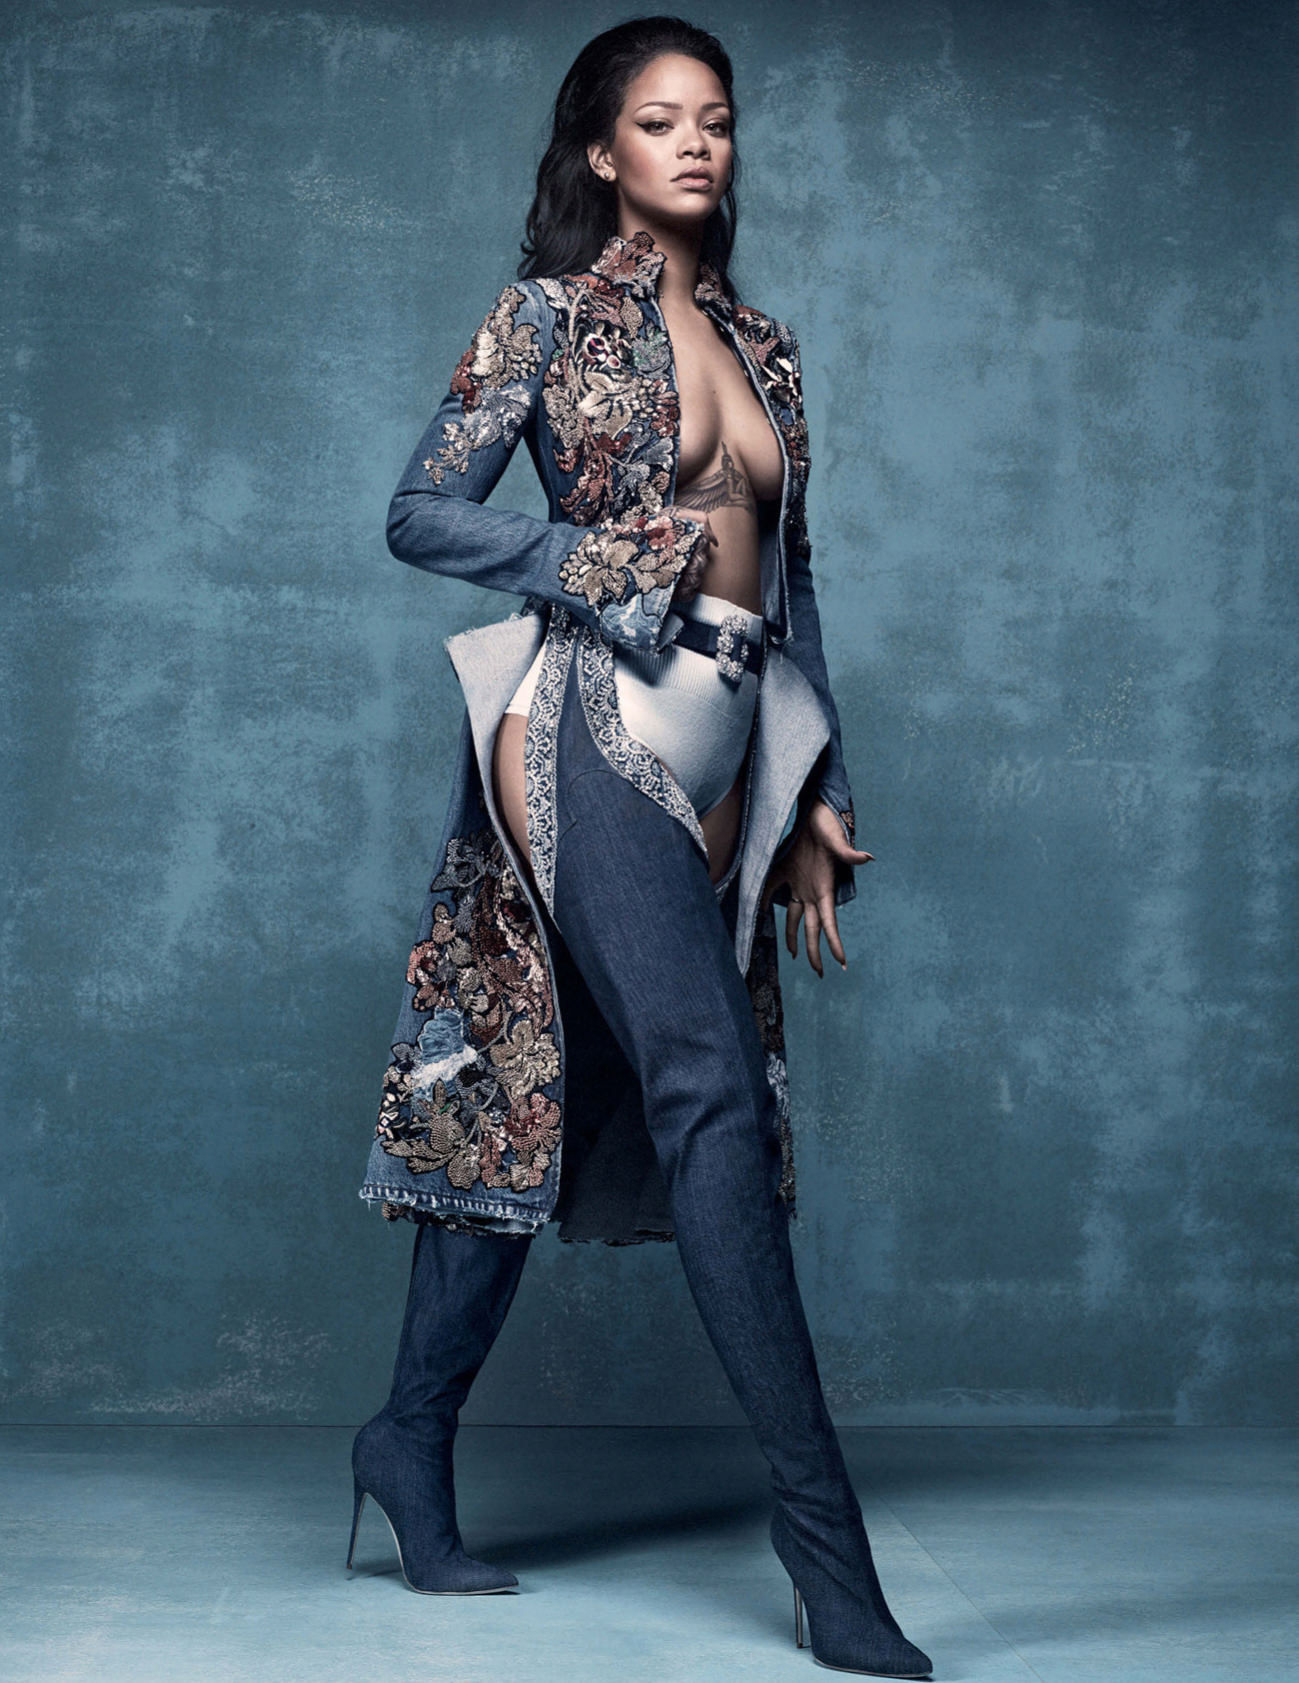 """Rihanna in the """"9 to 5"""" boots from her latest collab with Manolo Blahnik."""